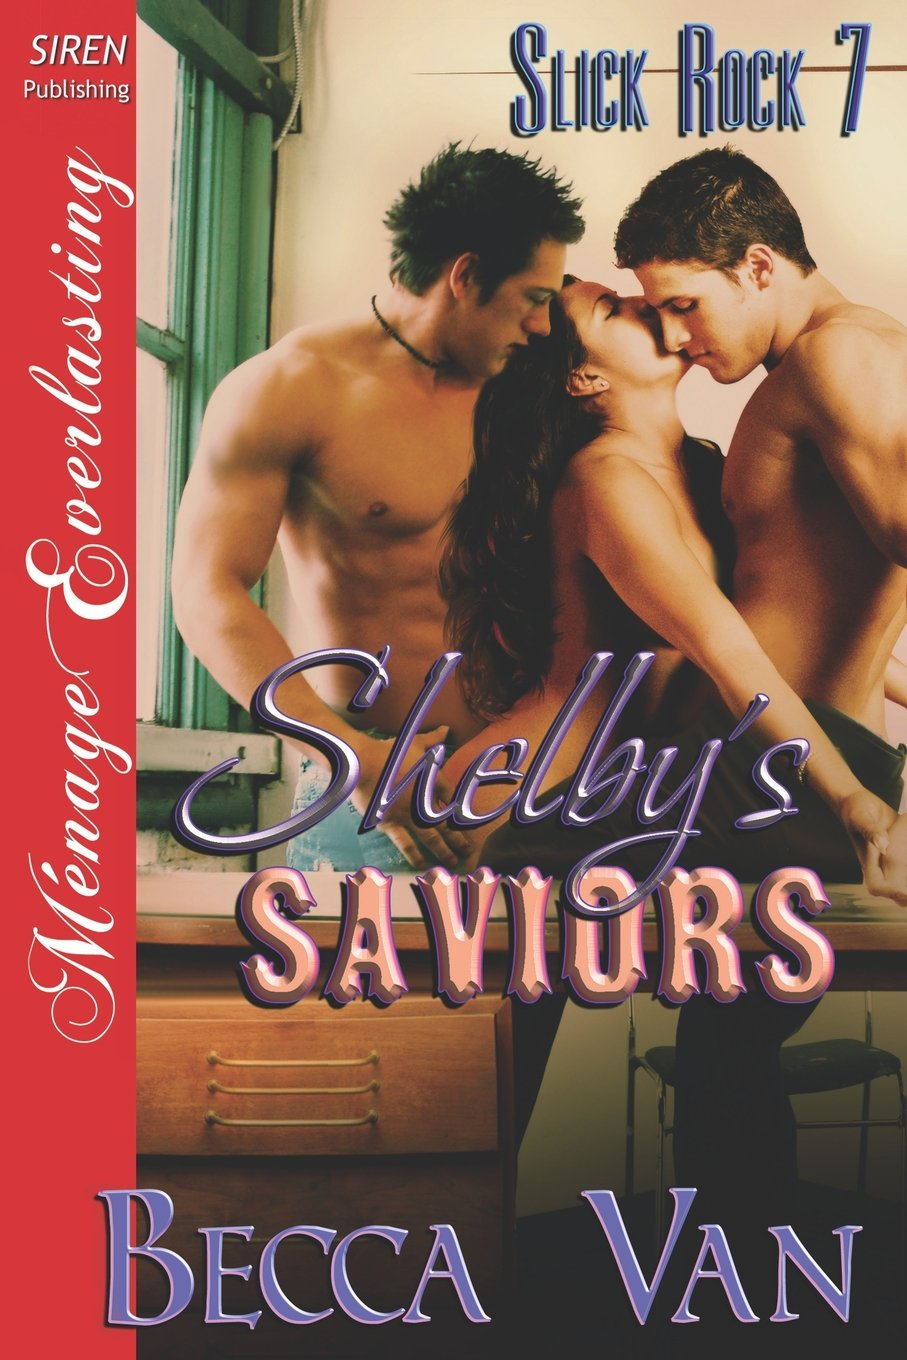 Amazon: Shelby's Saviors [slick Rock 7] (siren Publishing Menage  Everlasting) (slick Rock, Siren Publishing Menage Everlasting)  (9781622419531): Becca